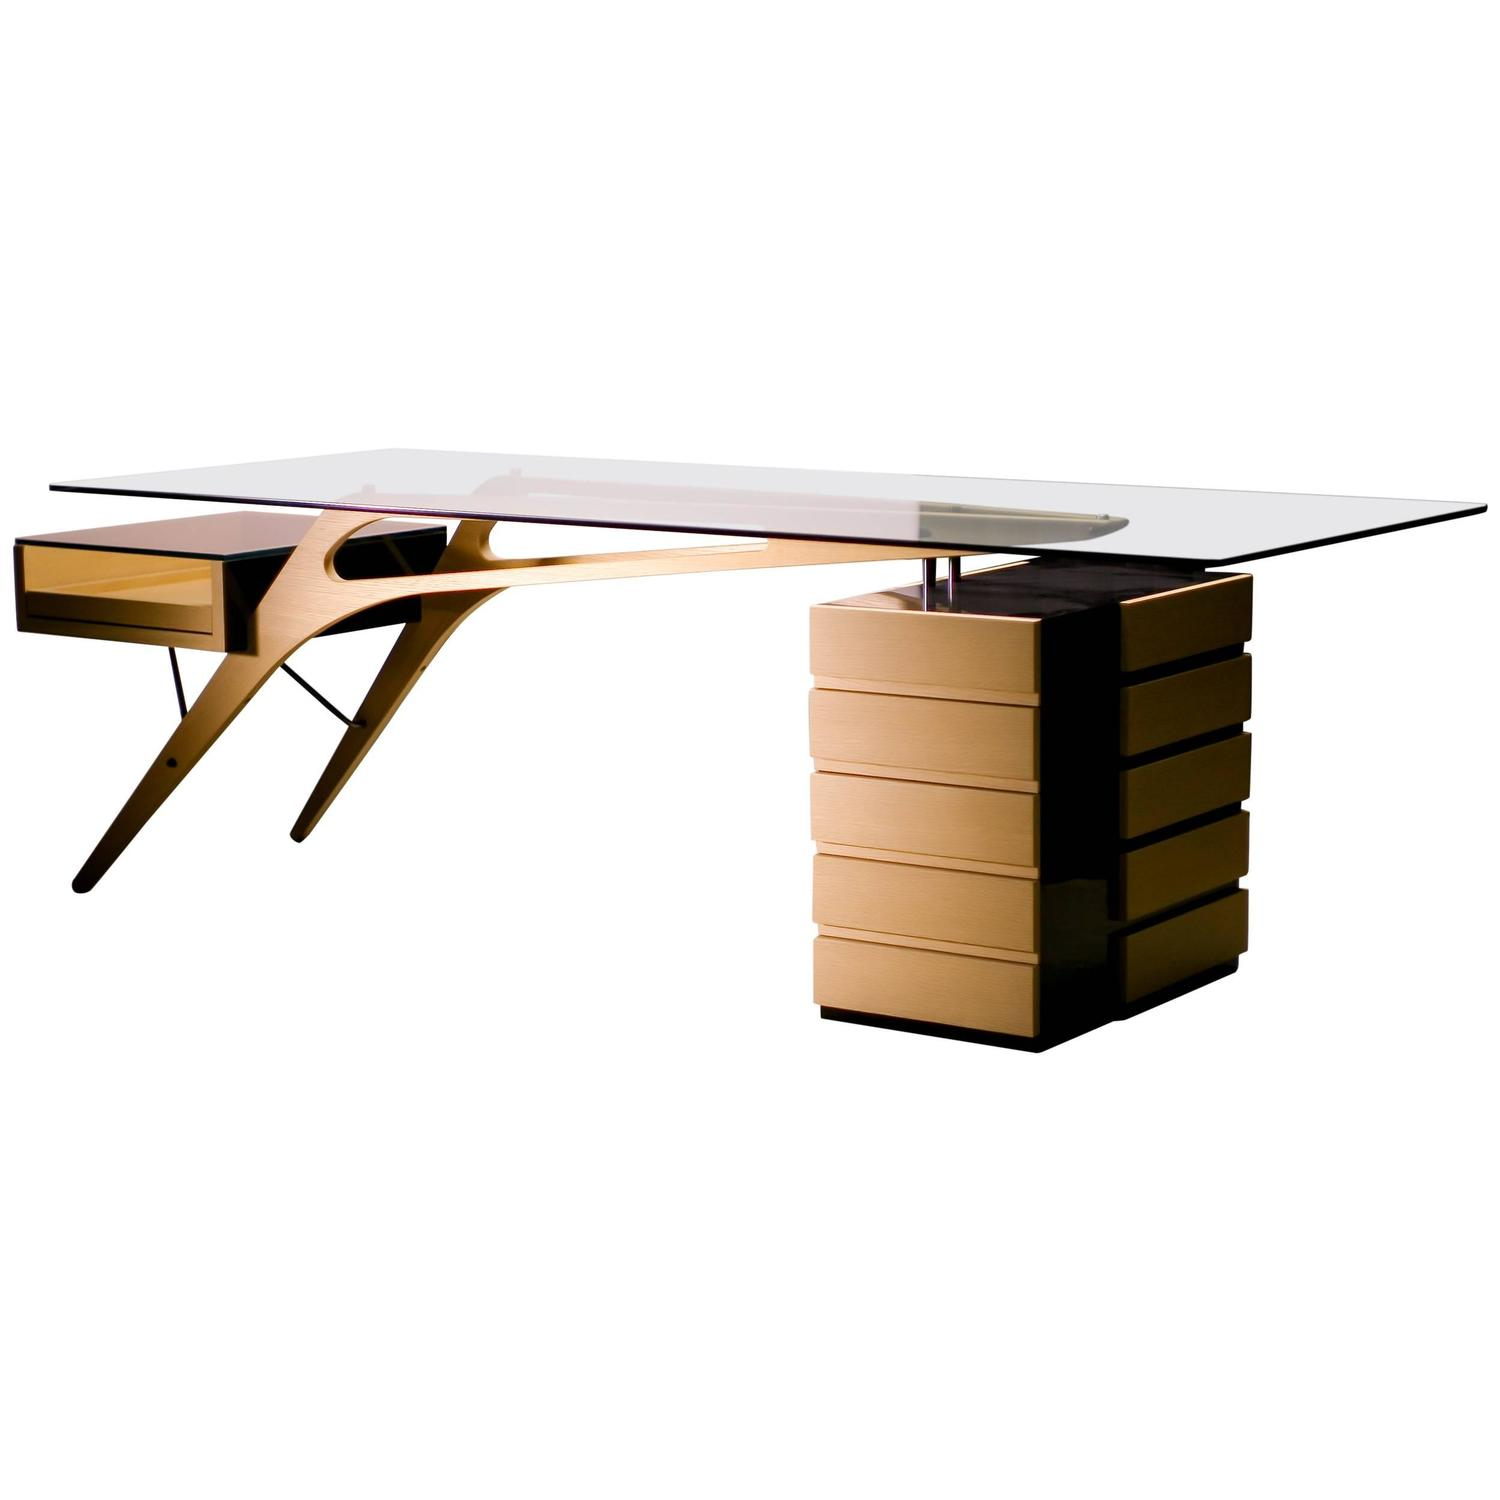 cavour desk by zanotta homage to carlo mollino for sale at 1stdibs. Black Bedroom Furniture Sets. Home Design Ideas